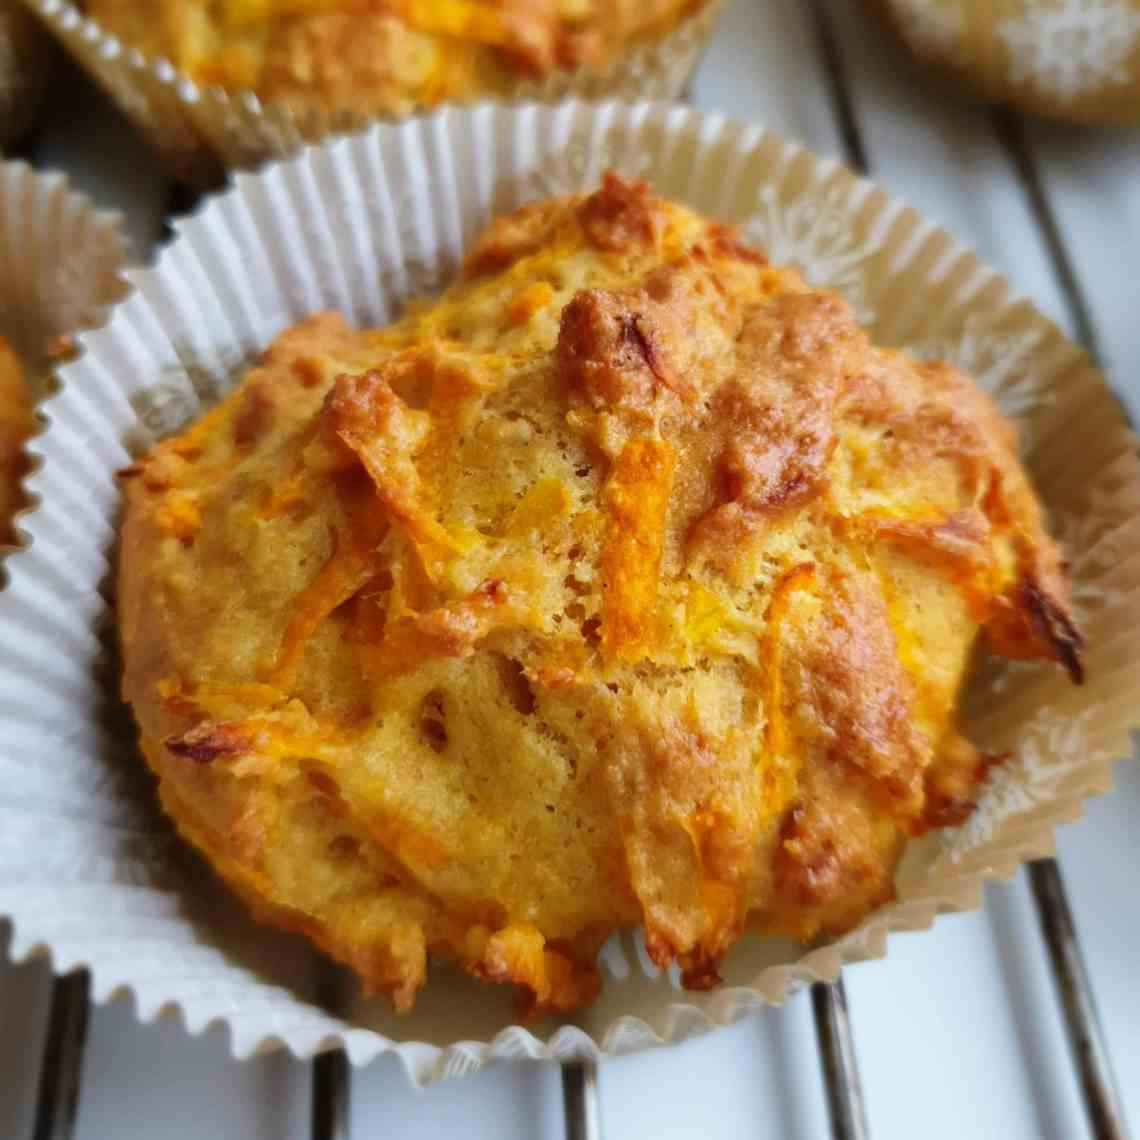 Savoury pumpkin muffins – a fast and easy muffin recipe. Use your pumpkin muffins as an easy breakfast or alongside a bowl of soup. Find recipes, free prints, and inspiration at danishthings.com